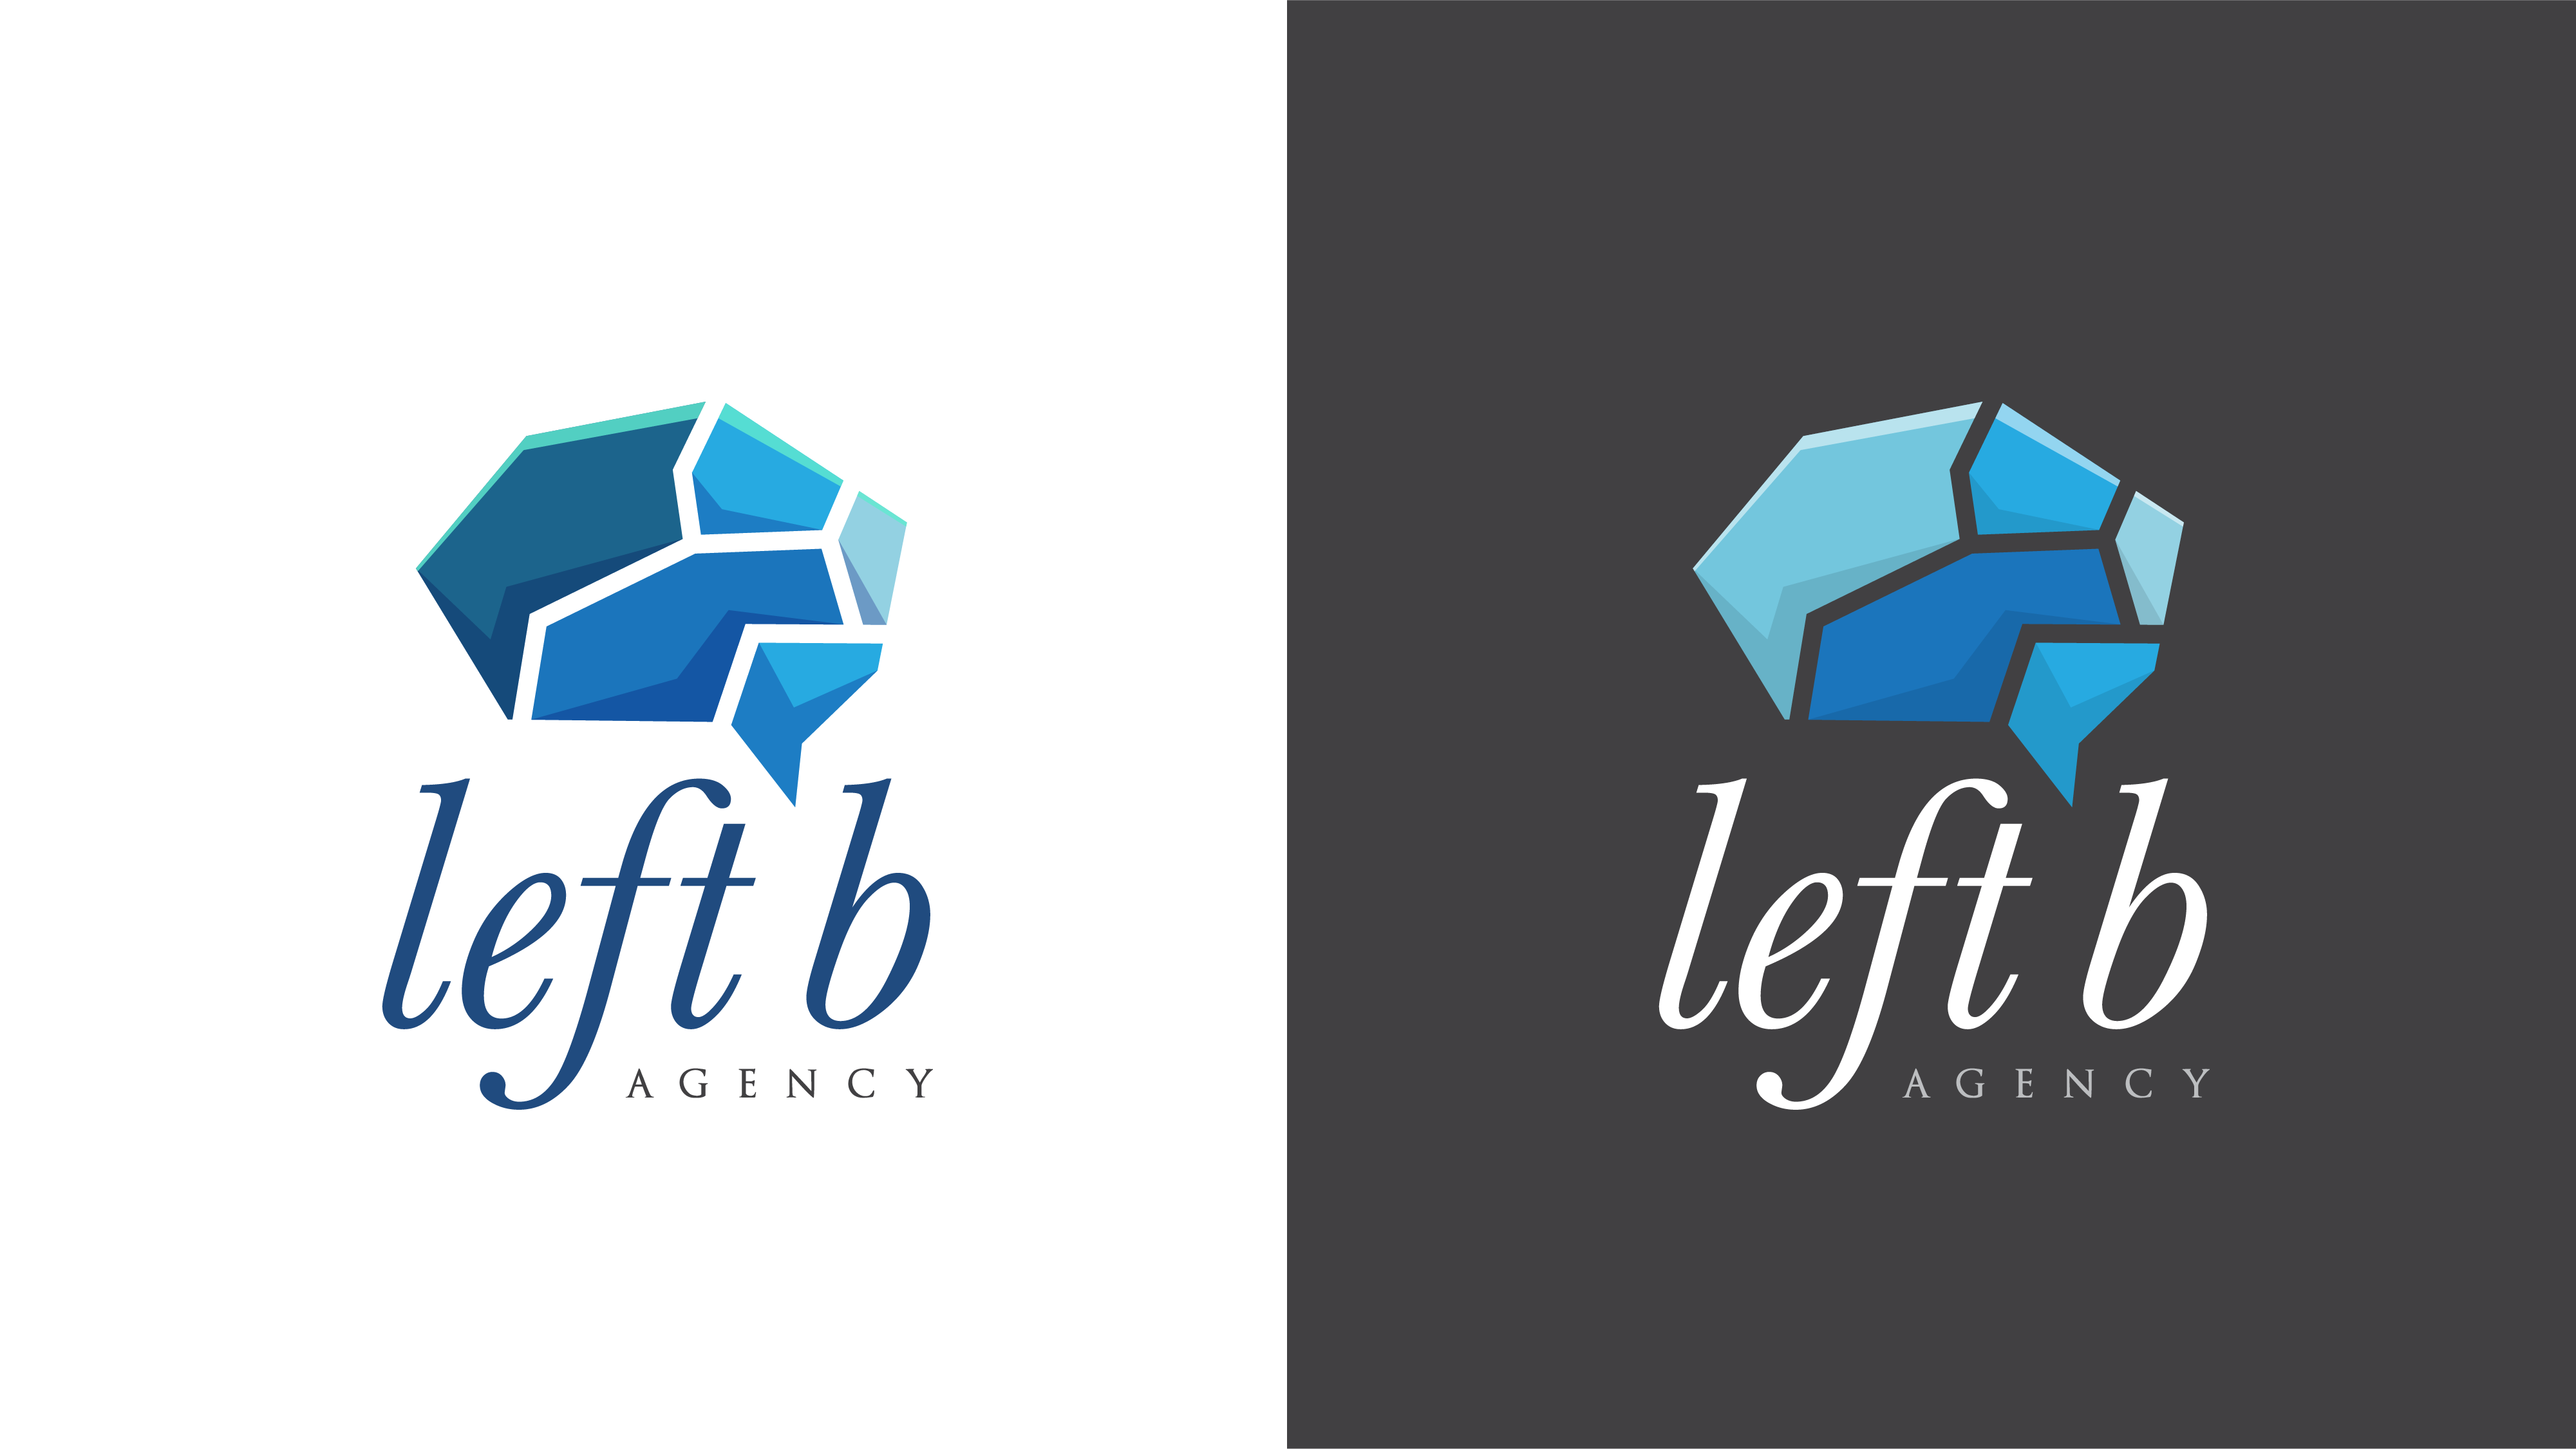 How the Paperwork Agency became Left B Agency